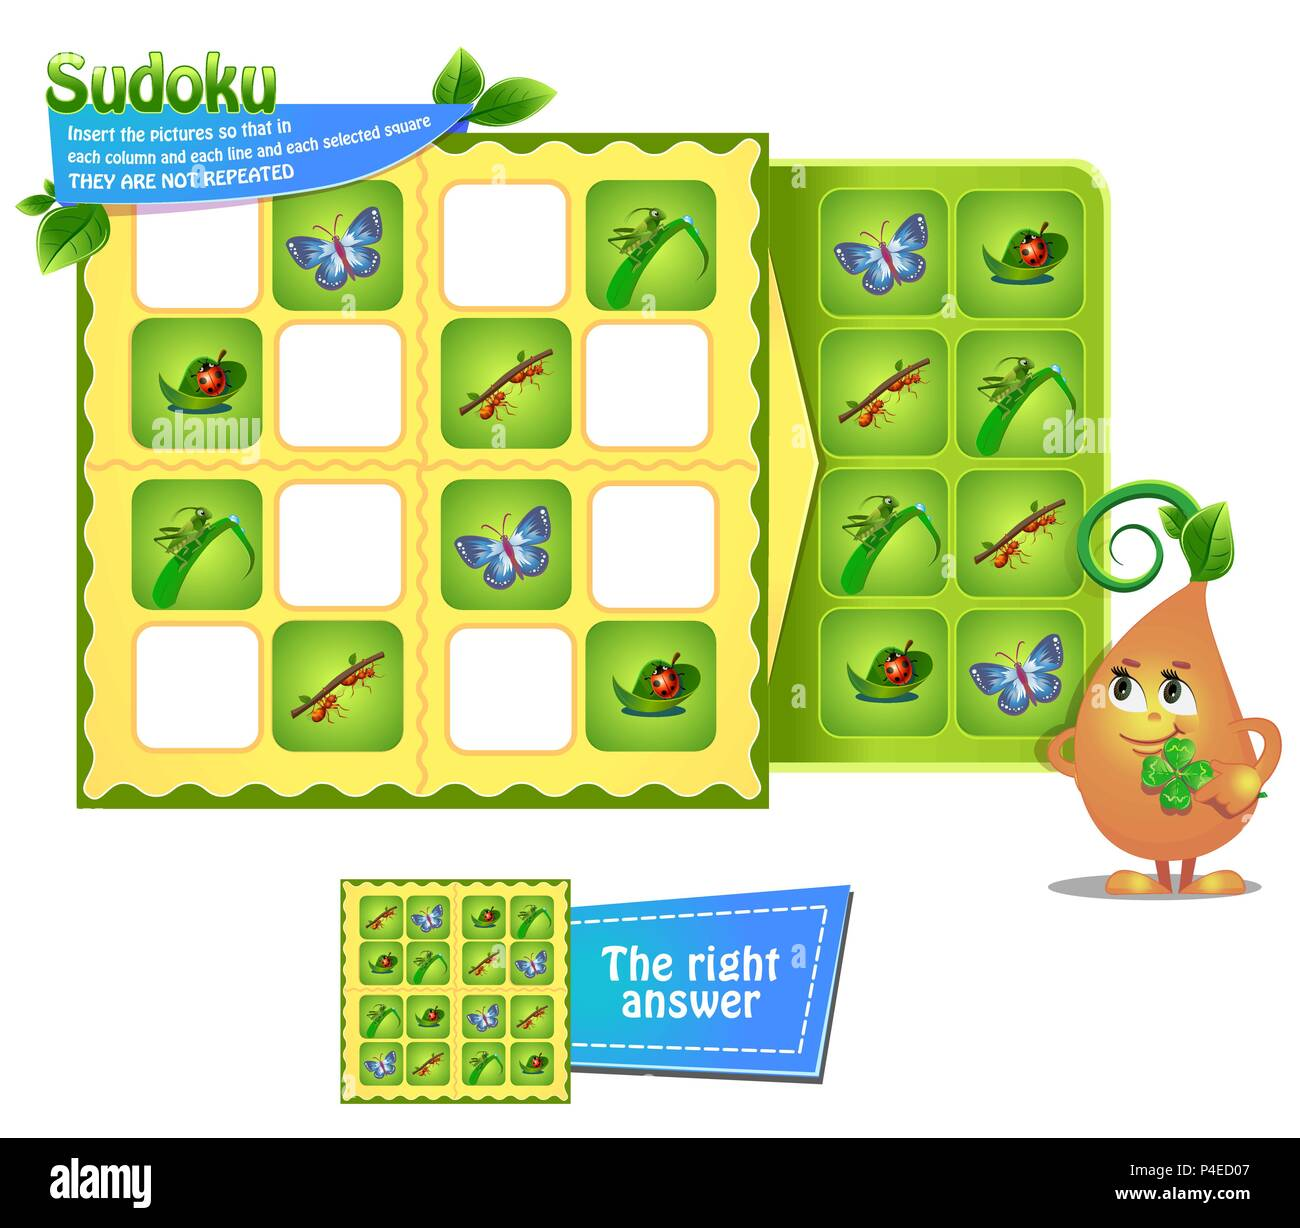 Sudoku Stock Vector Images